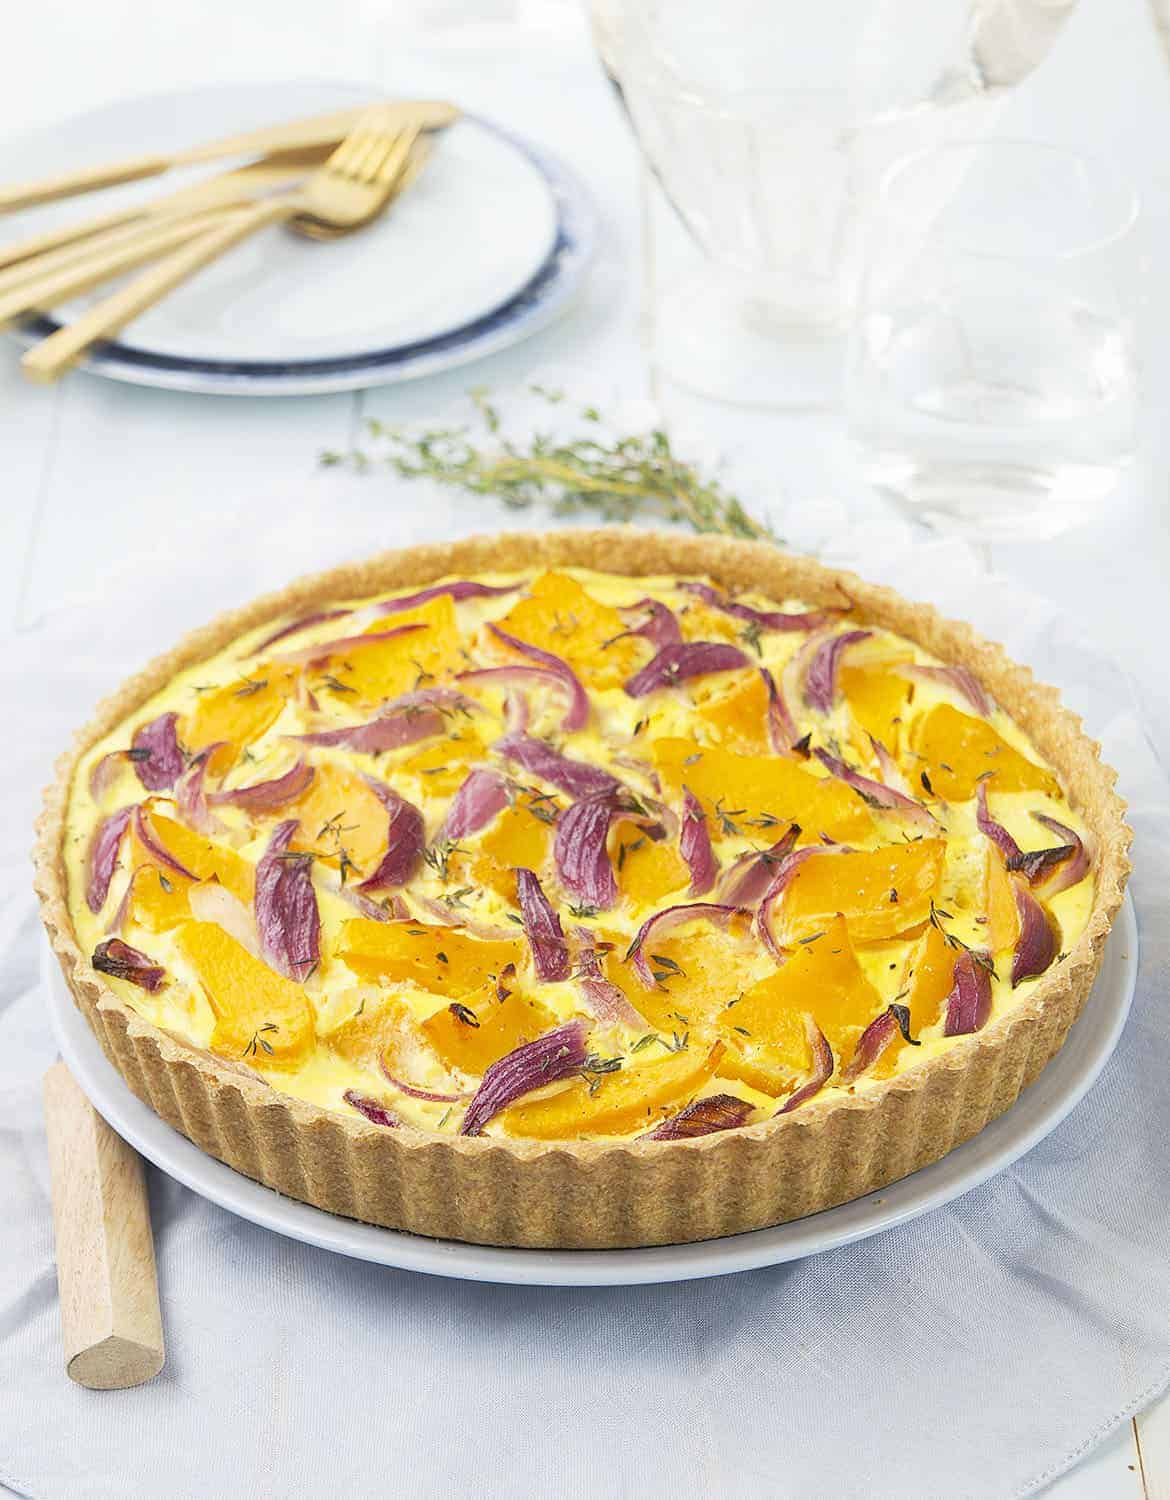 A healthy, wholesome pumpkin quiche made from scratch.